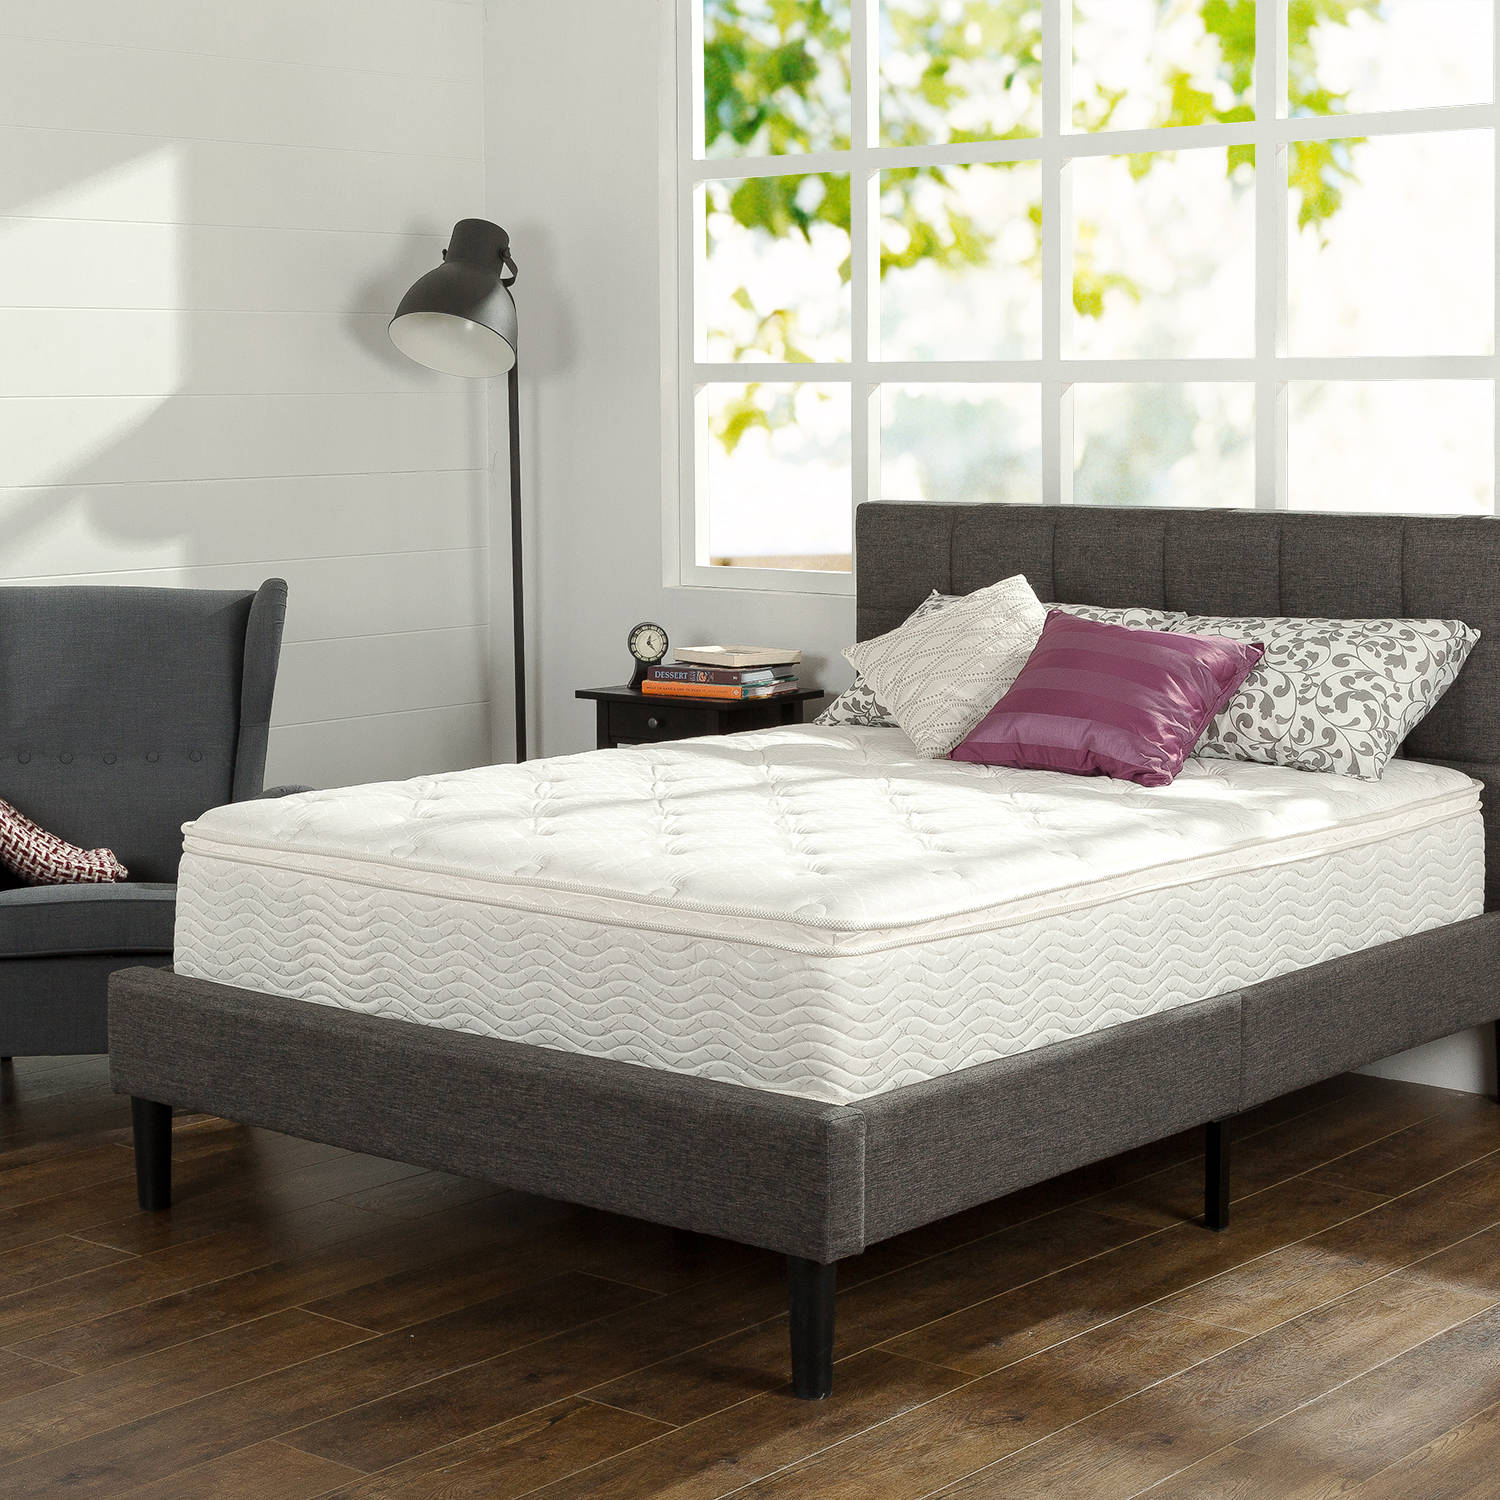 "Slumber 1 12"" Comfort Euro Box Top Spring Mattress, Multiple Sizes"